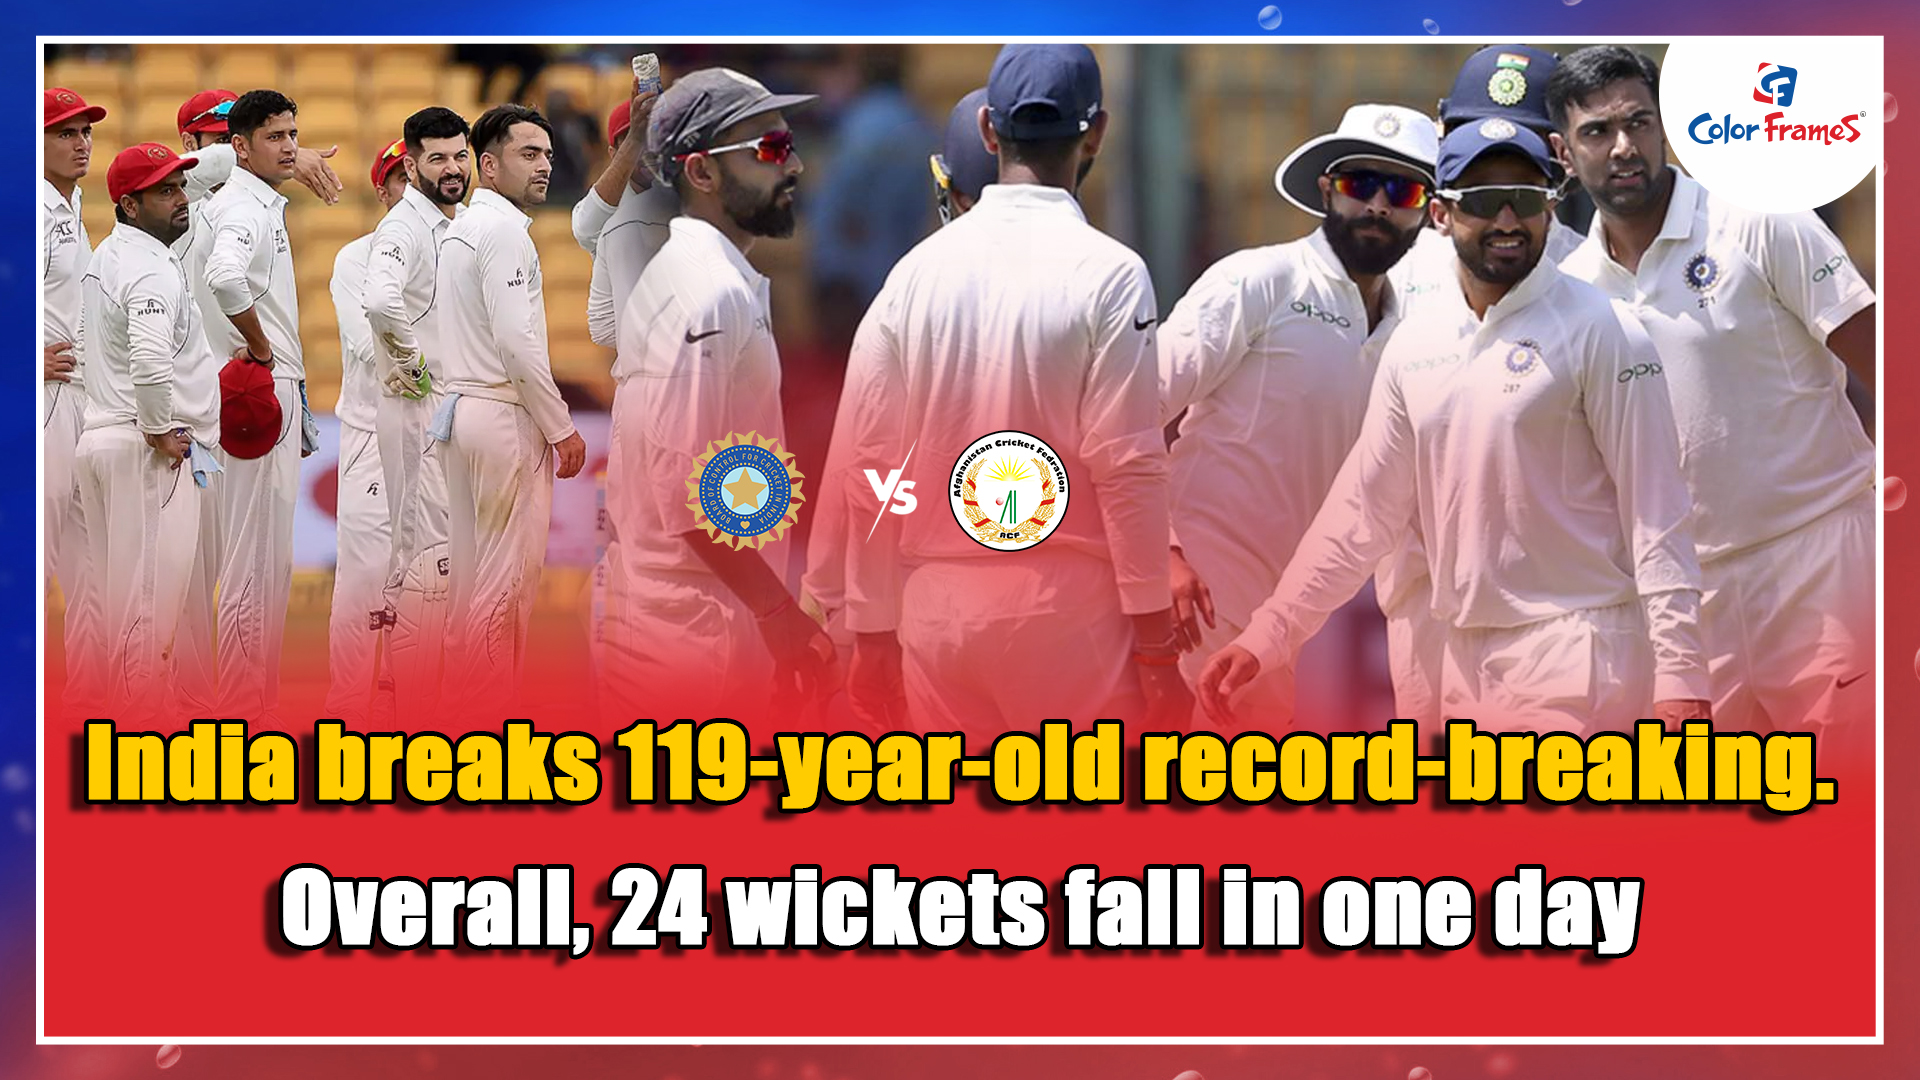 India breaks 119-year-old record-breaking. Overall, 24 wickets fall in one day